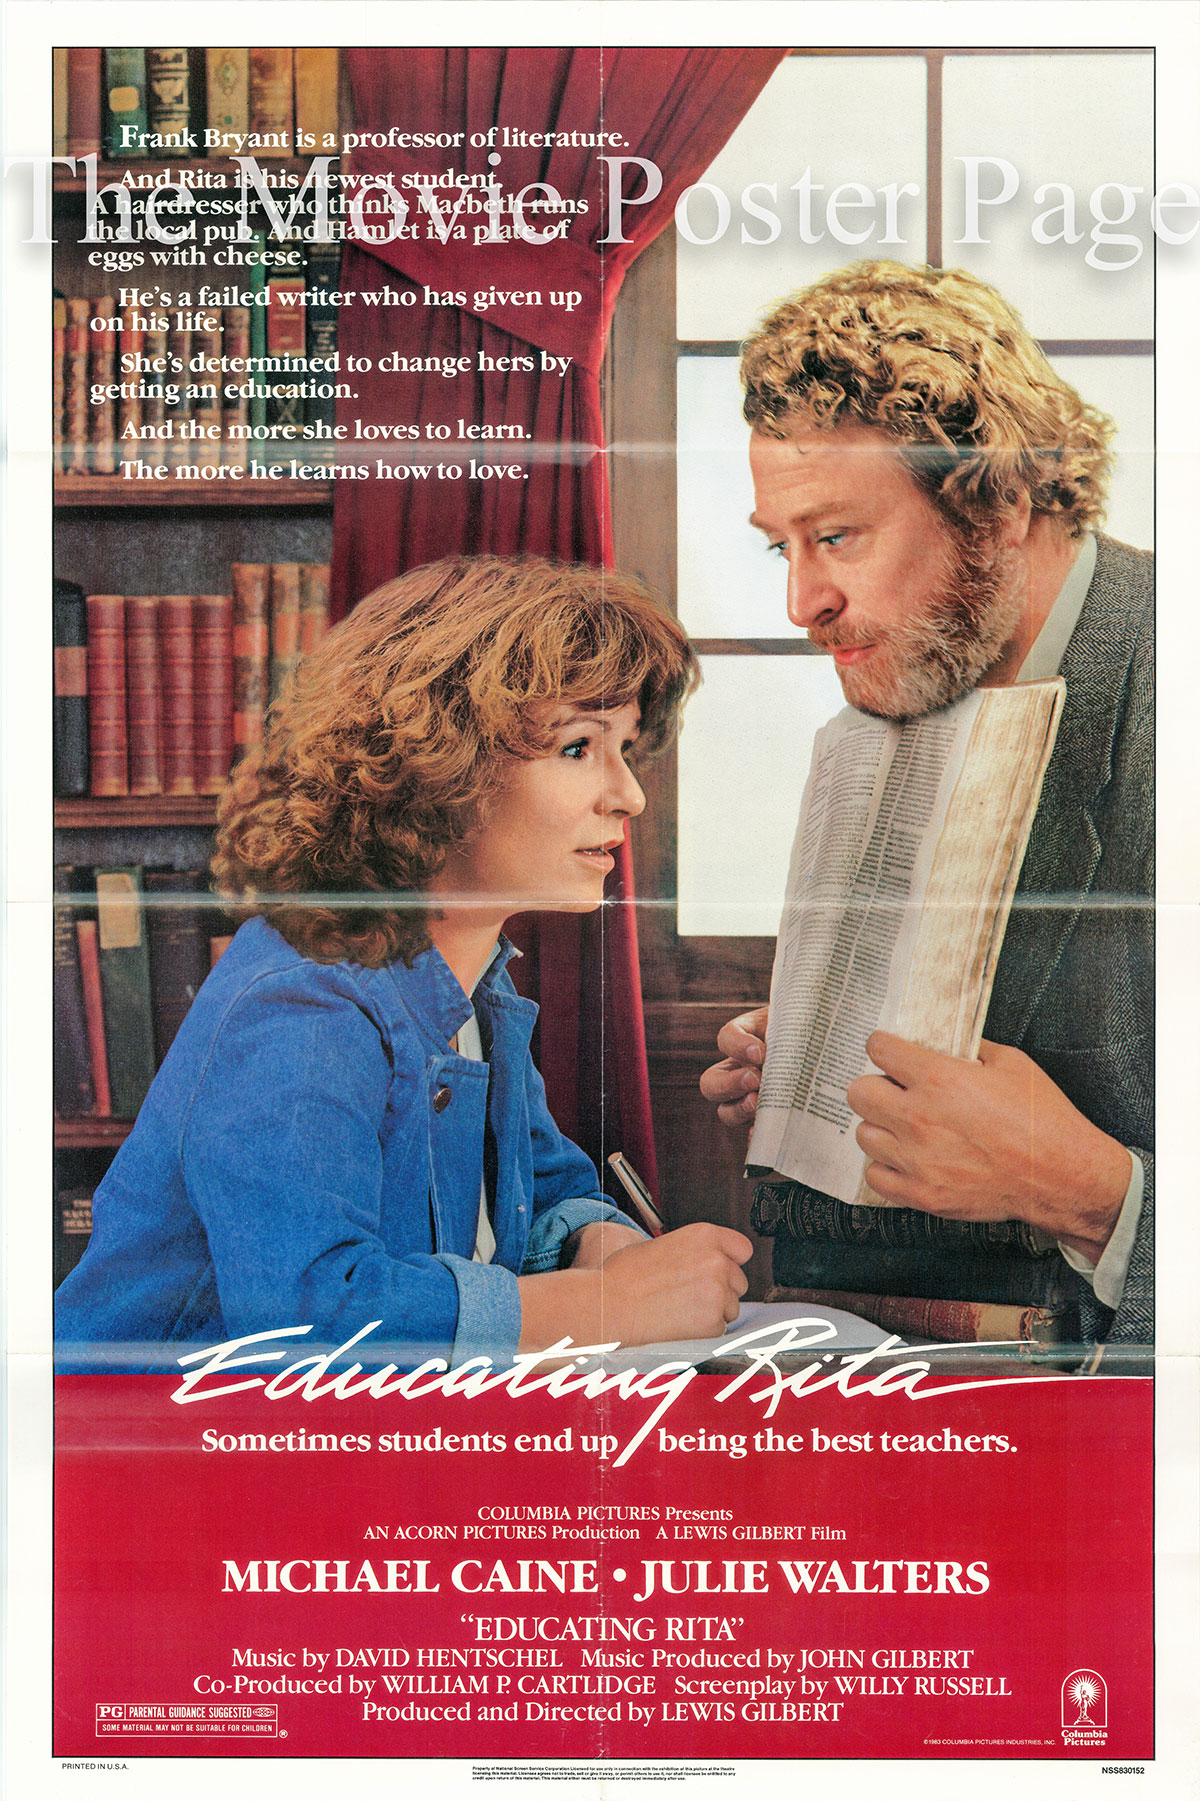 Pictured is a US one-sheet poster for the 1983 Lewis Gilbert film Educating Rita starring Michael Caine as Dr. Frank Bryant.